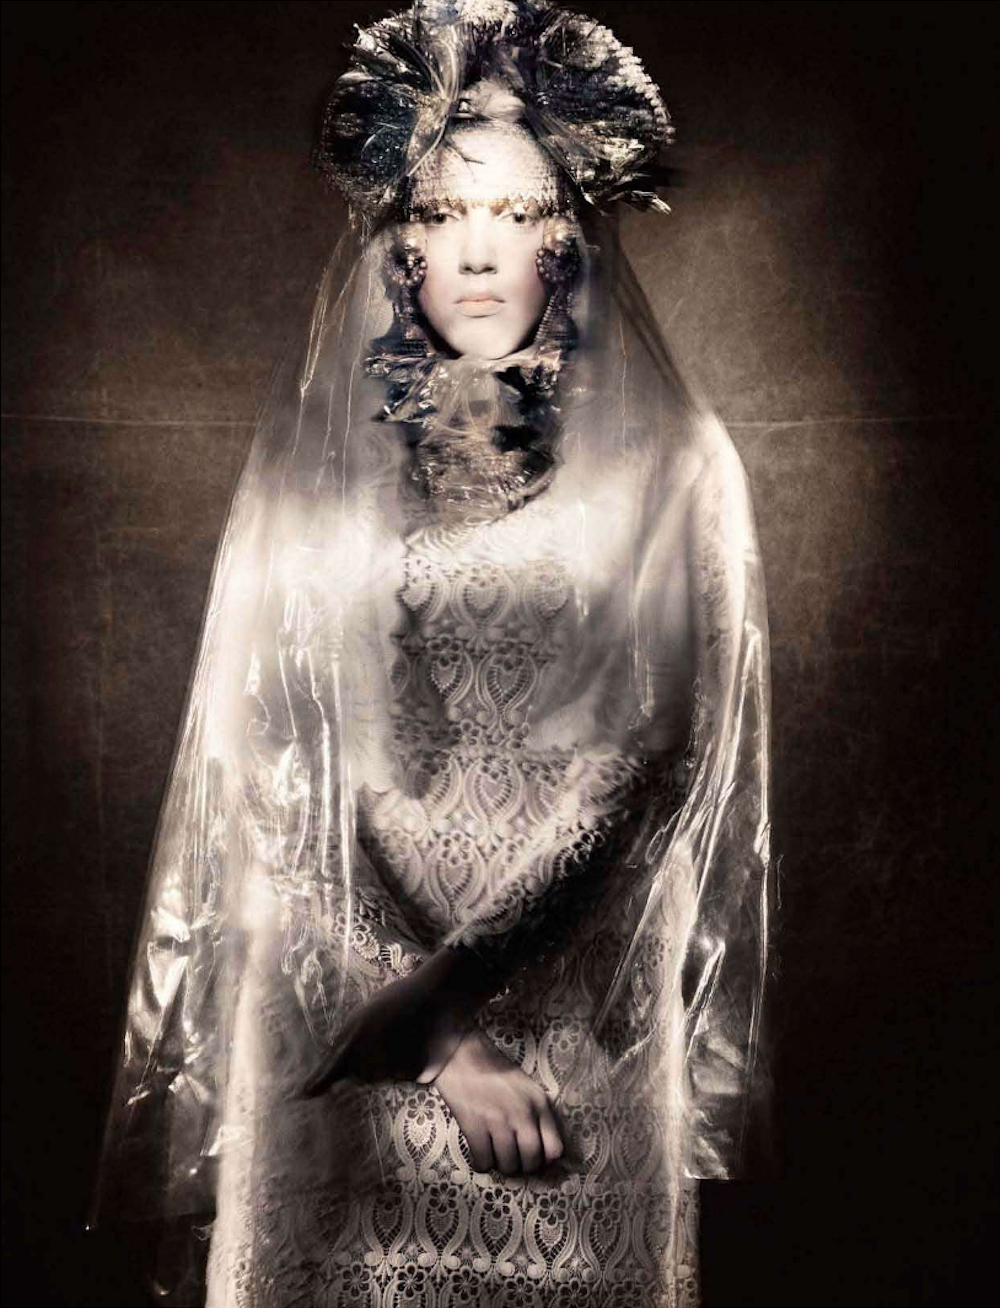 Paolo Roversi - Yana Sheptovetskaya - stylist Cathy Edwards - hair Marc Lopez - makeup Lucia Pica